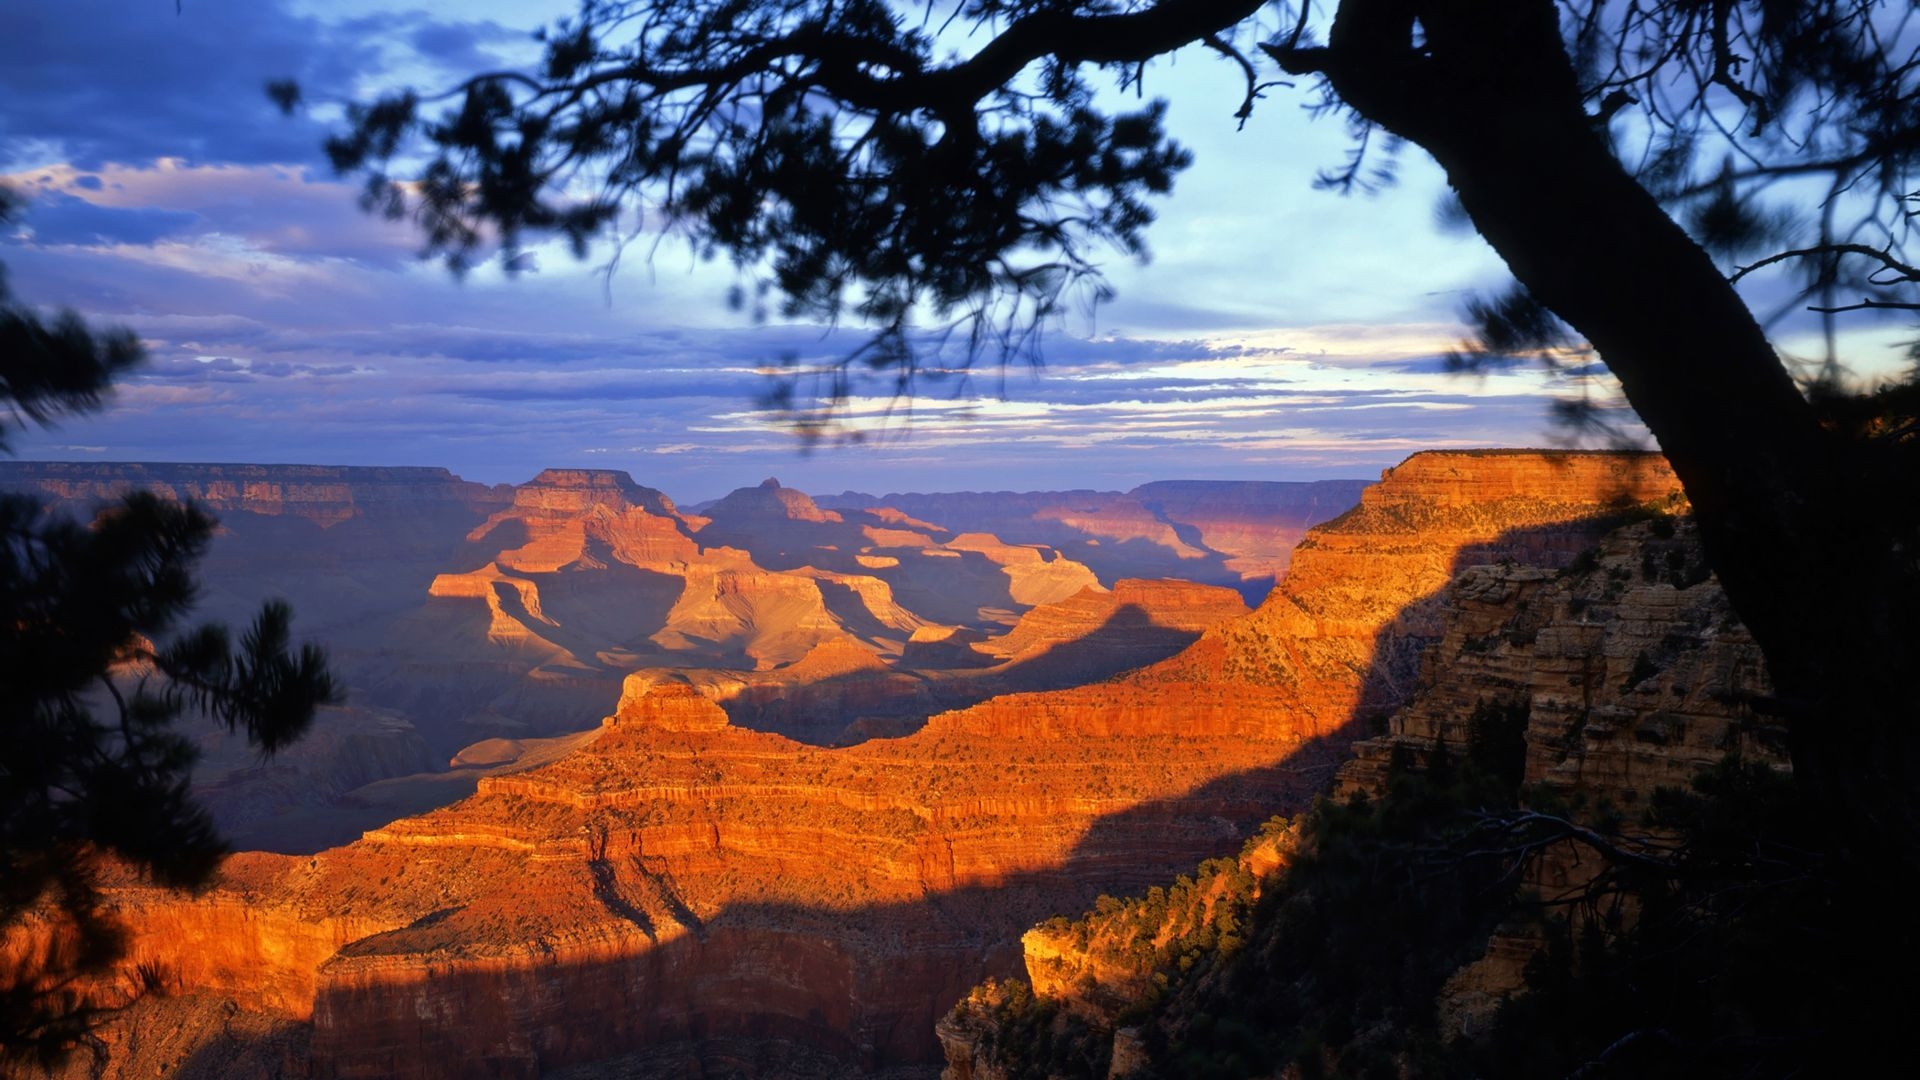 South Rim at sunset with tree in foreground